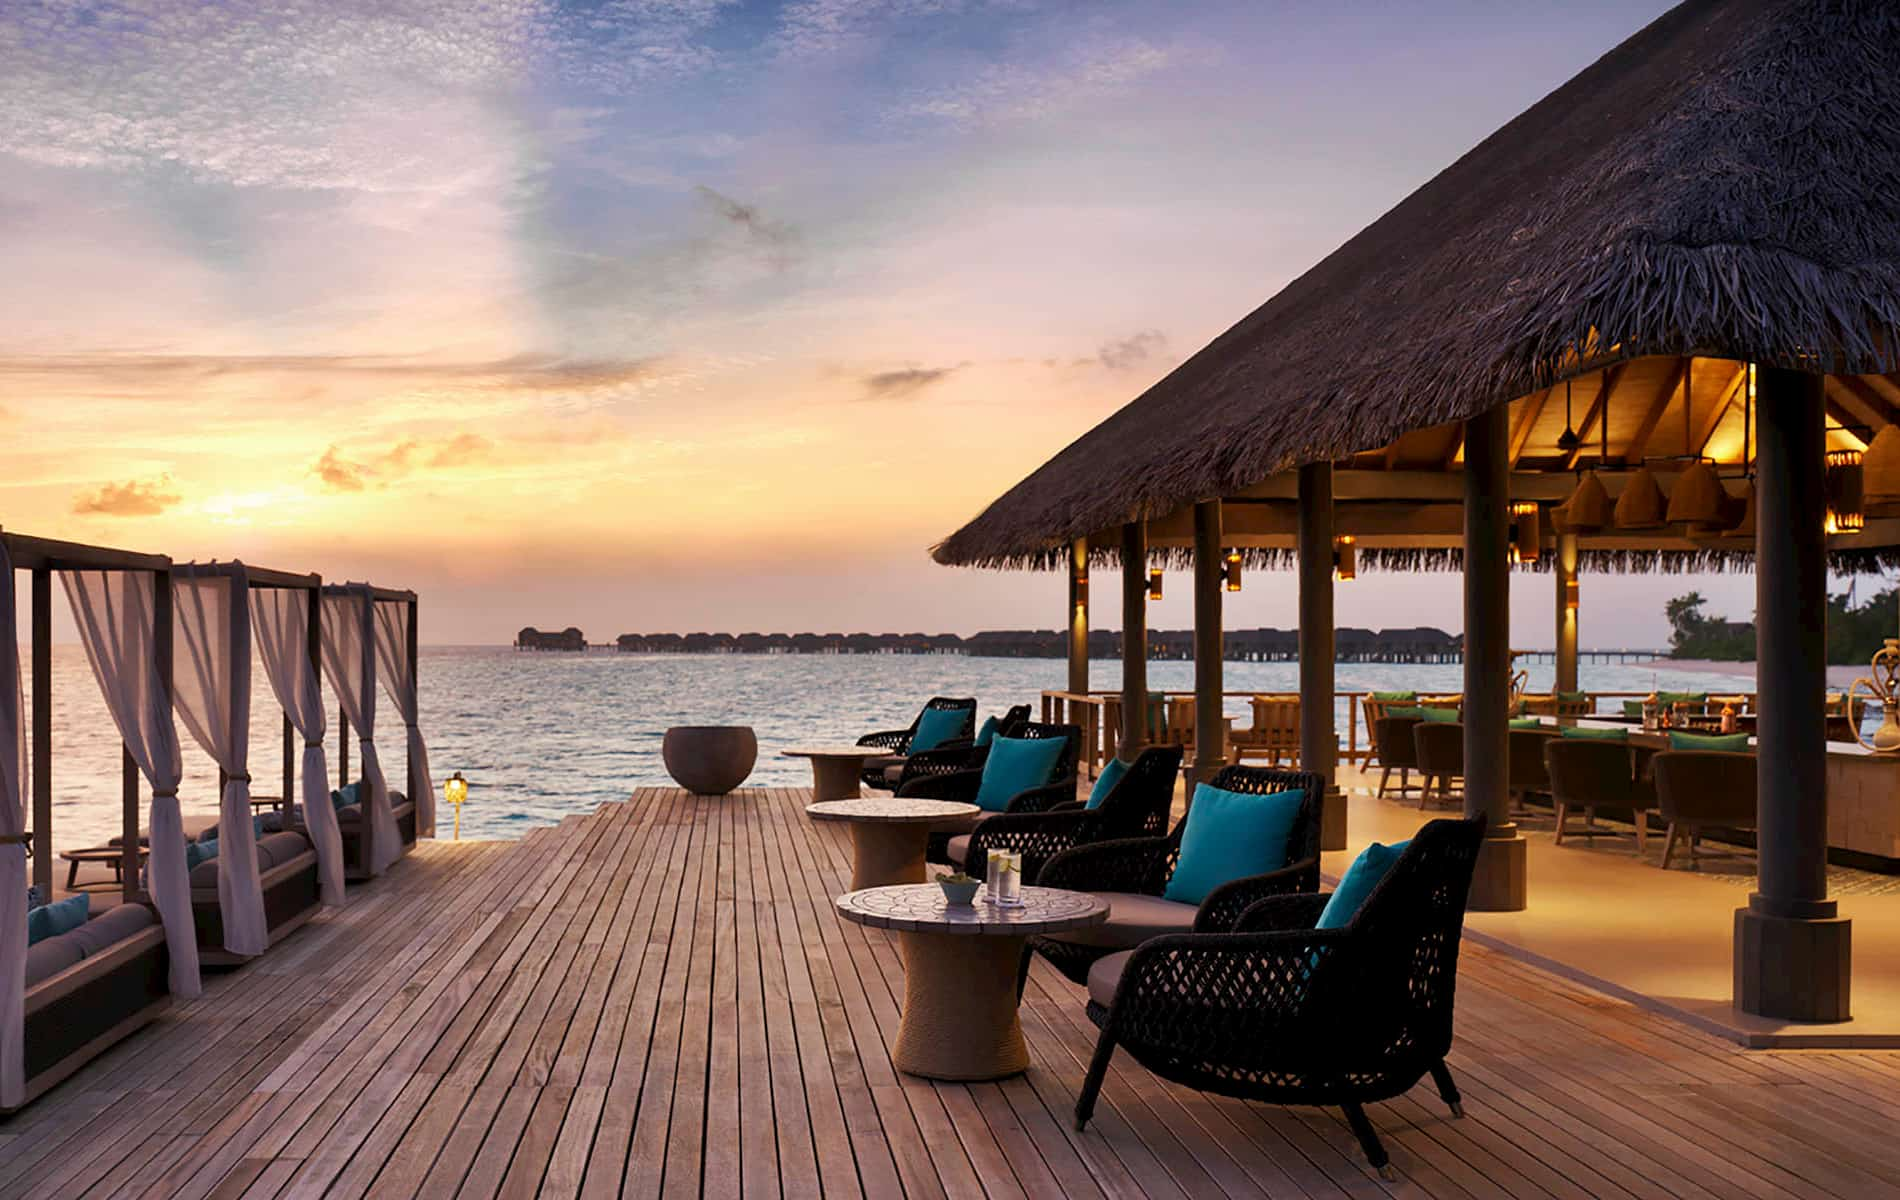 Resort Maldive Vakkaru Bar Lagoon